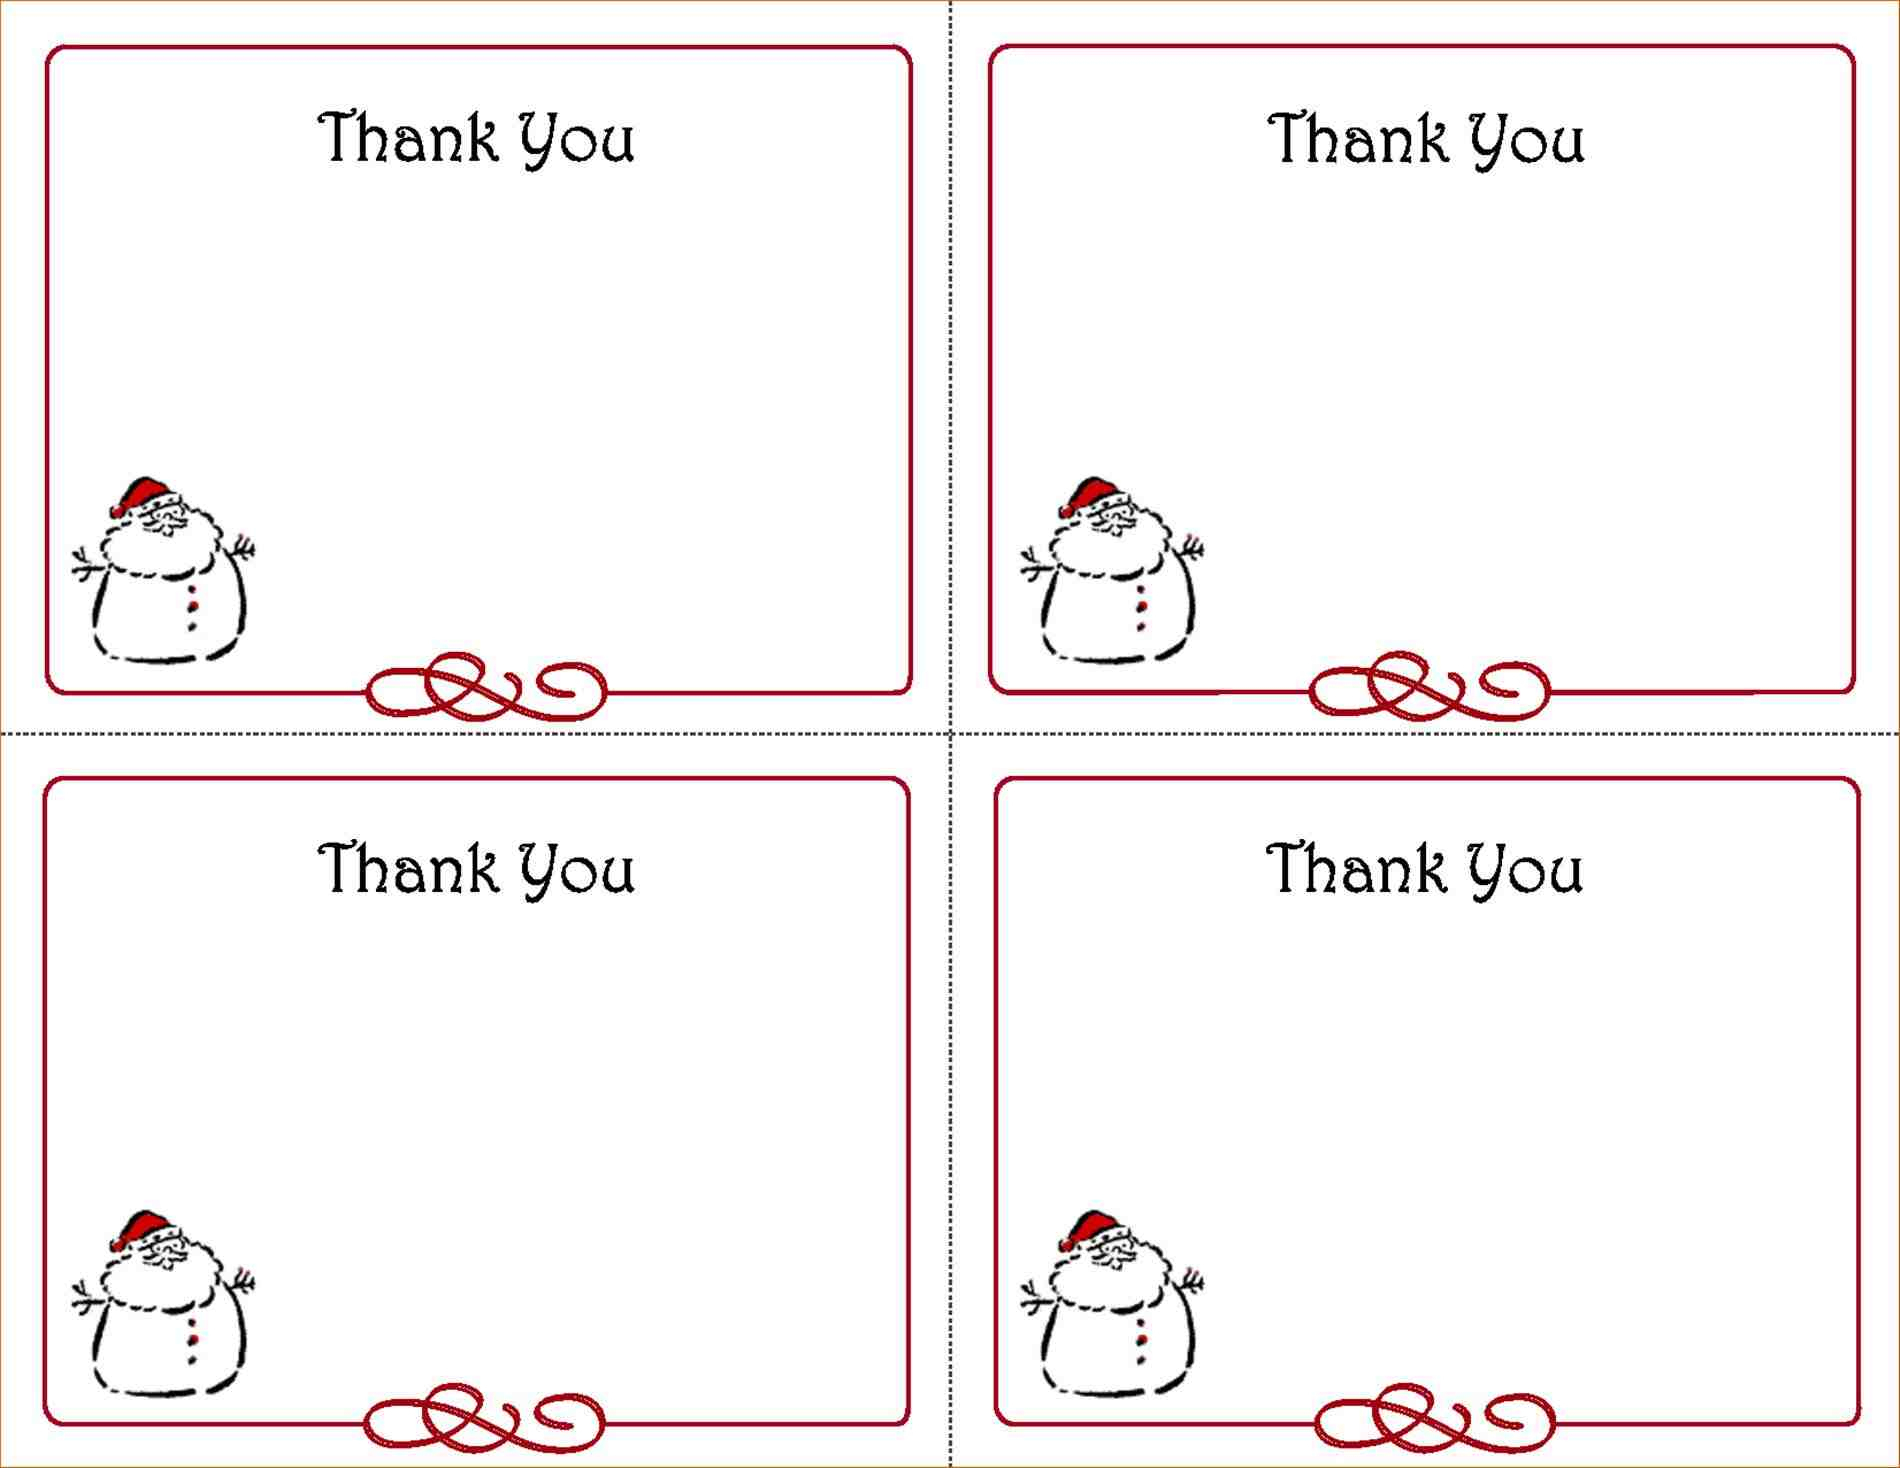 Themed-Birthday-Party-With-Free-Printables-Favors-And-Christmas-Gift - Free Printable Thank You Tags Template